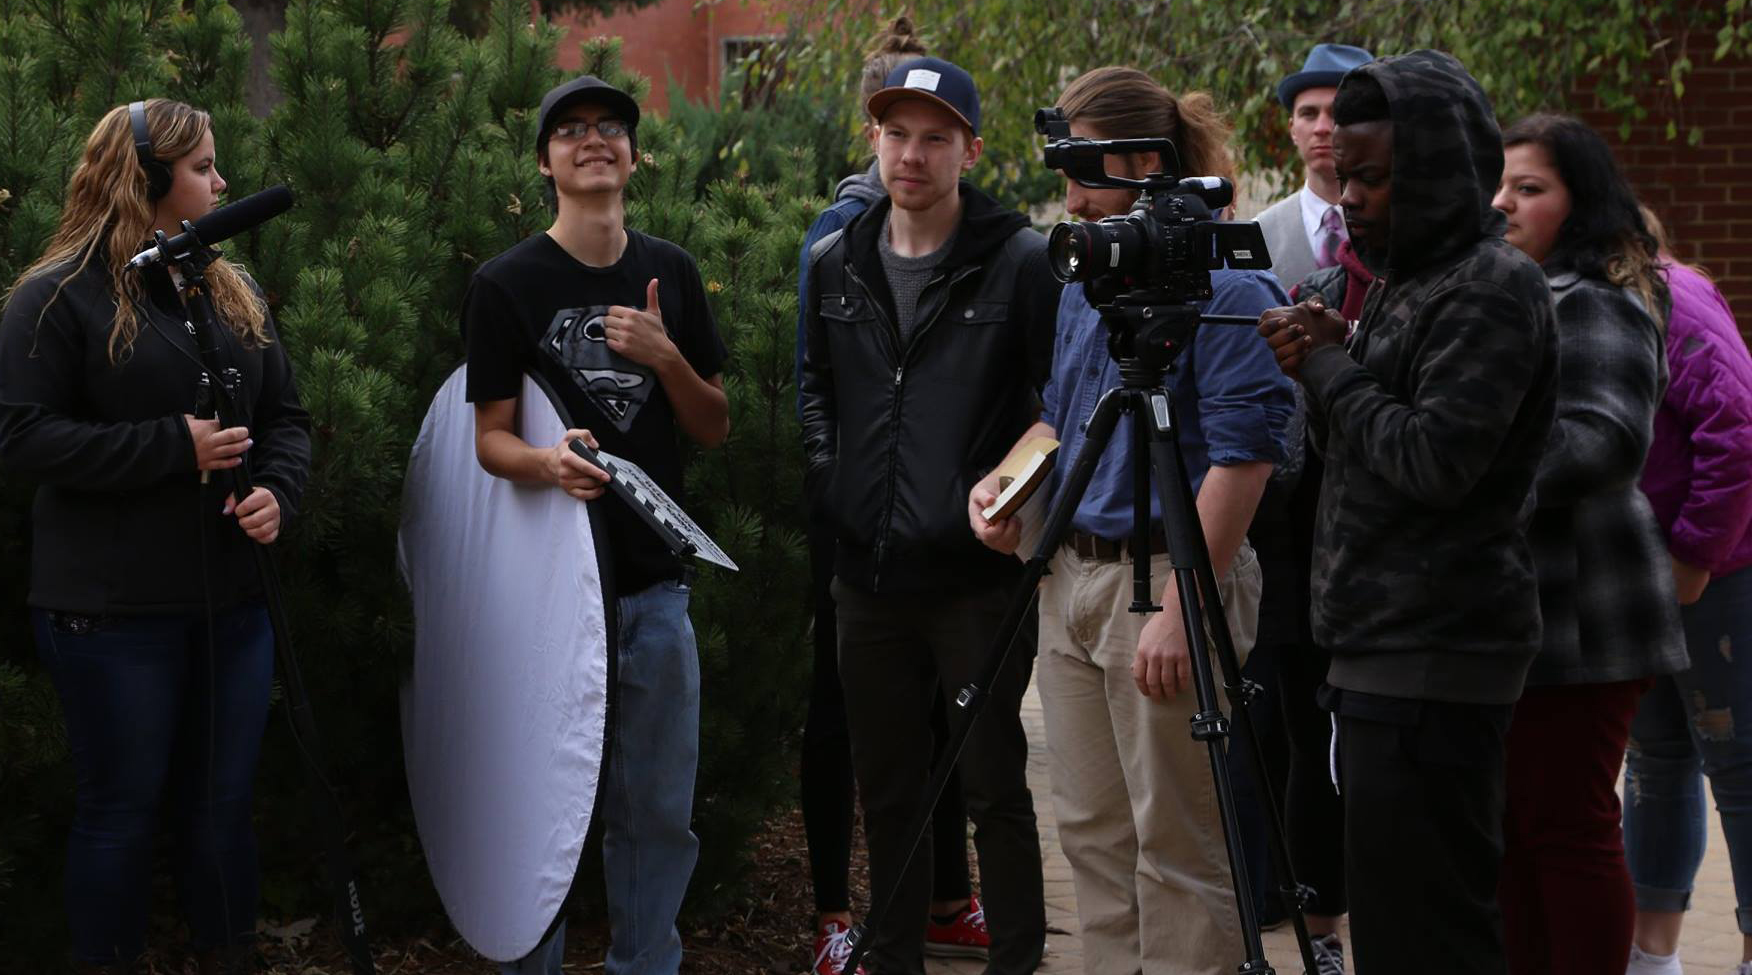 Students learn to deliver on 21st century platforms - Production crew on location. Fall 2016.